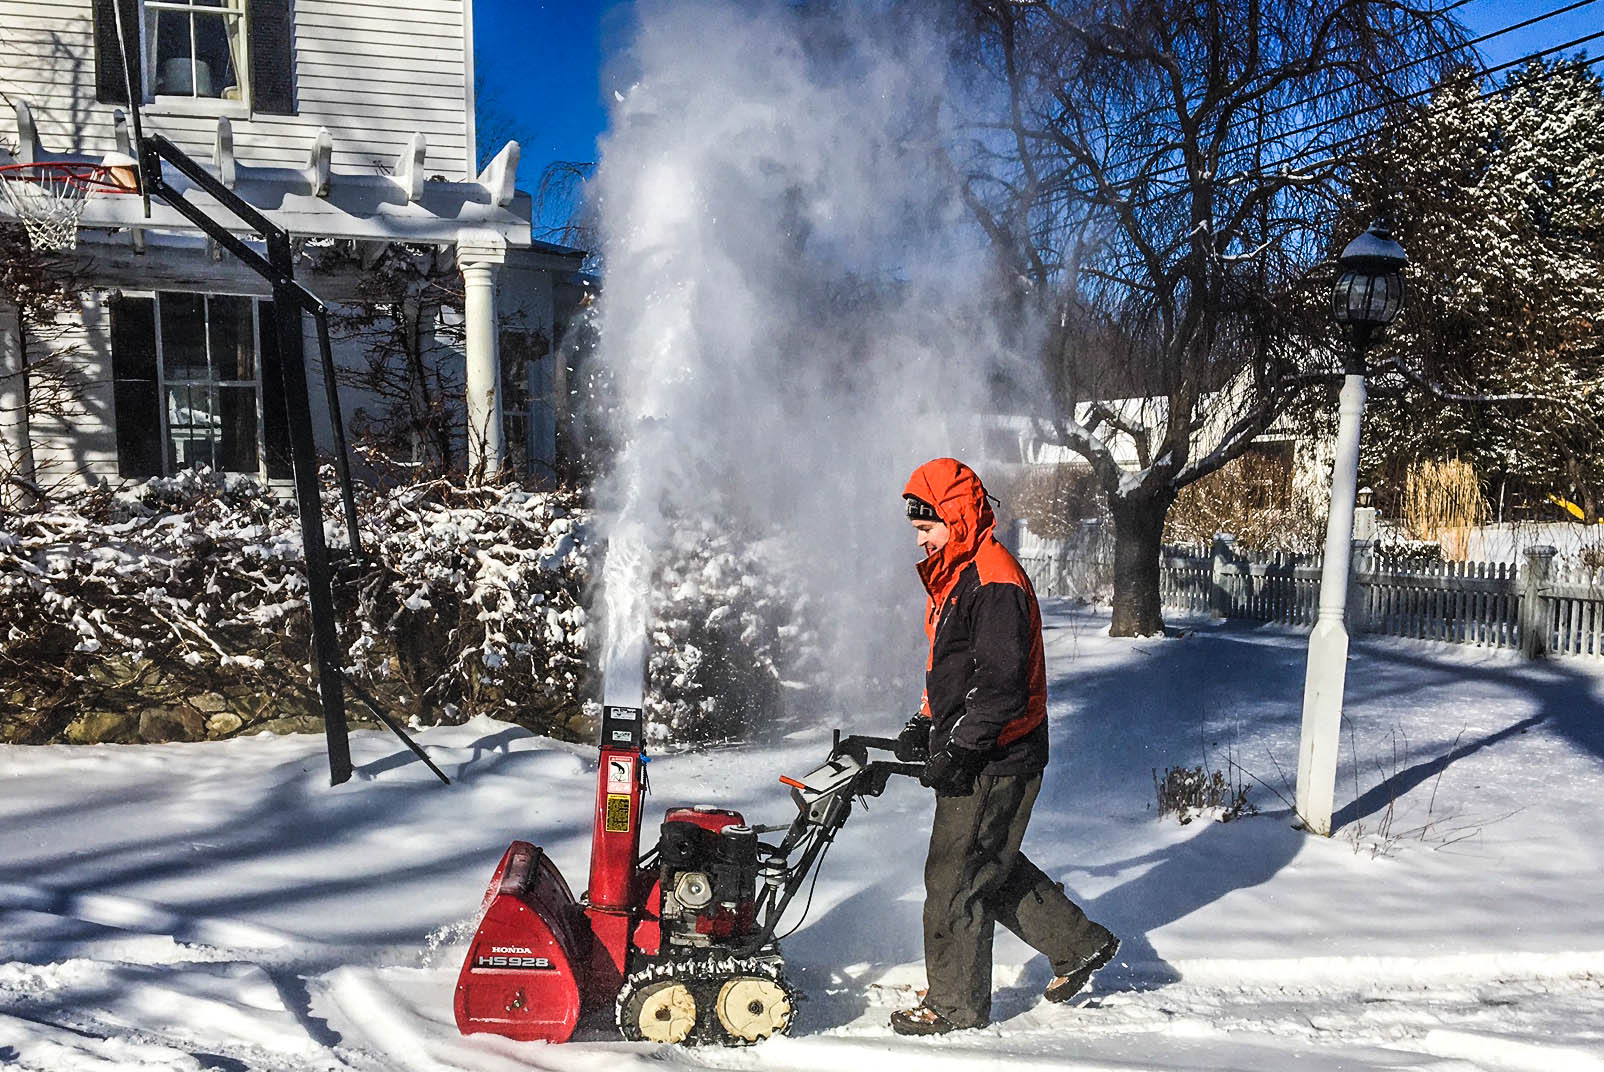 Honda snowblower in action.jpg